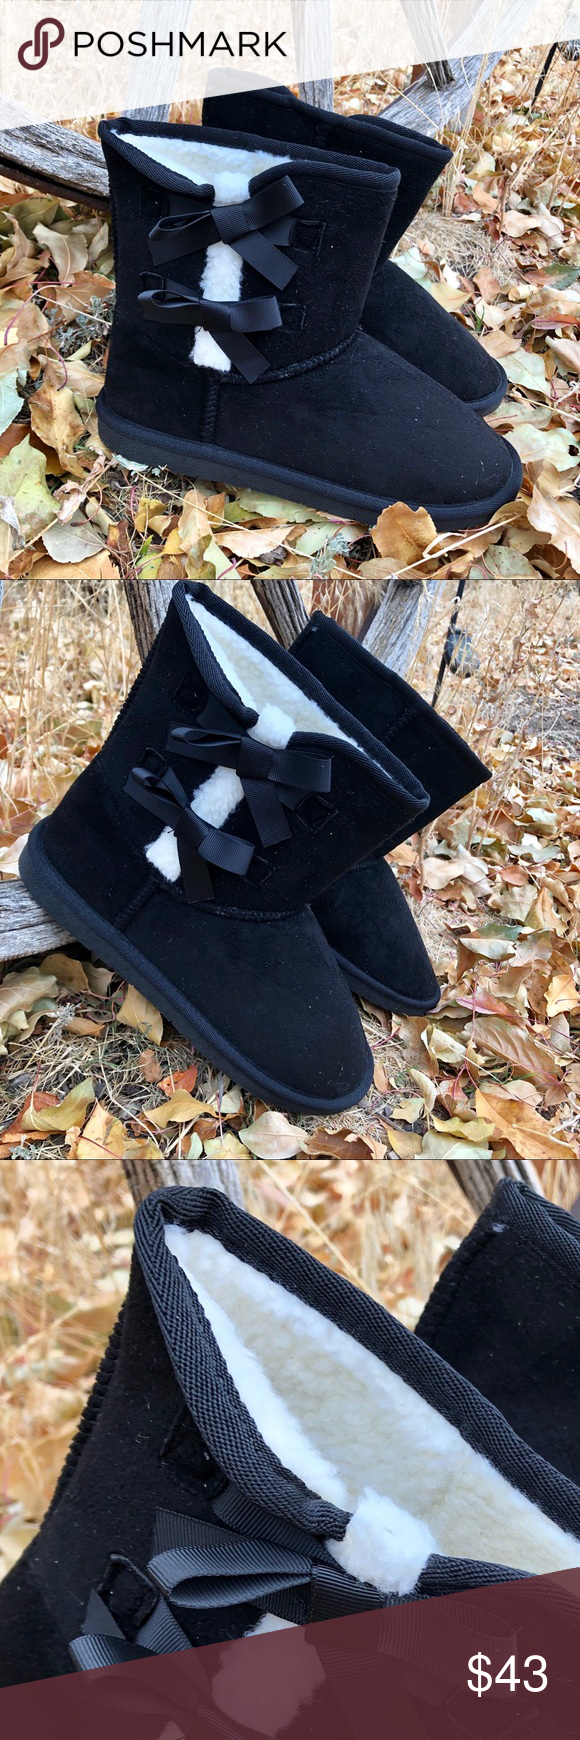 New! Black and White Sherpa Boot with Ribbon Bows The go to cold weather Boot!!! Black faux suede slip on Boot with Black Ribbon Bows and White Sherpa lining  Perfect with oversized sweaters and leggings or skinny jeans and bomber jackets. Outfit choices are limitless for the easy on/off boots. They'll even make you pajamas look cuter ❤️ New In Box True to size  Shipped straight from our BOUTIQUE  NO RETURNS PLEASE REFER TO POSHMARK RULES  ☮️❤️